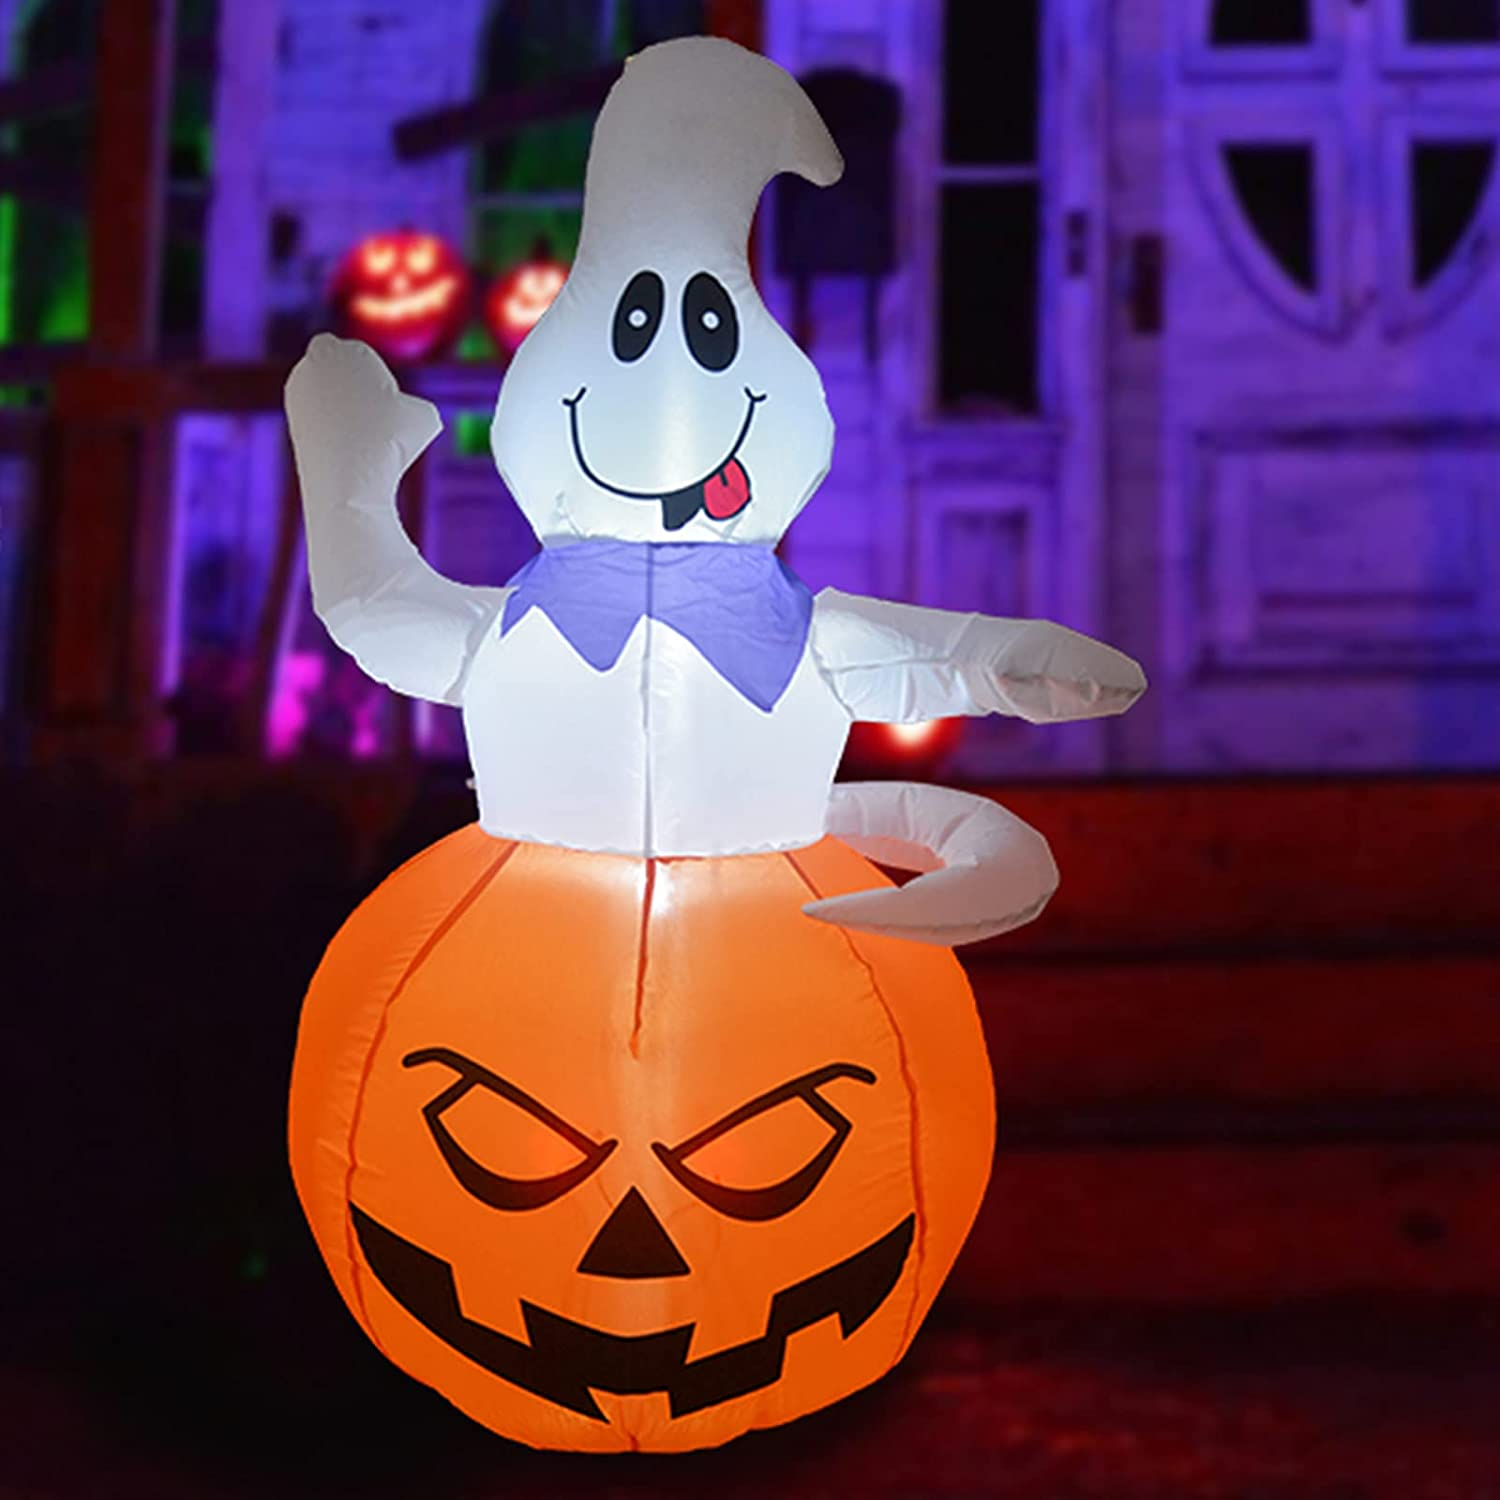 GOOSH 5 OFFicial site FT Limited price sale Height Halloween Inflatables Ghost Outdoor f Out Grow